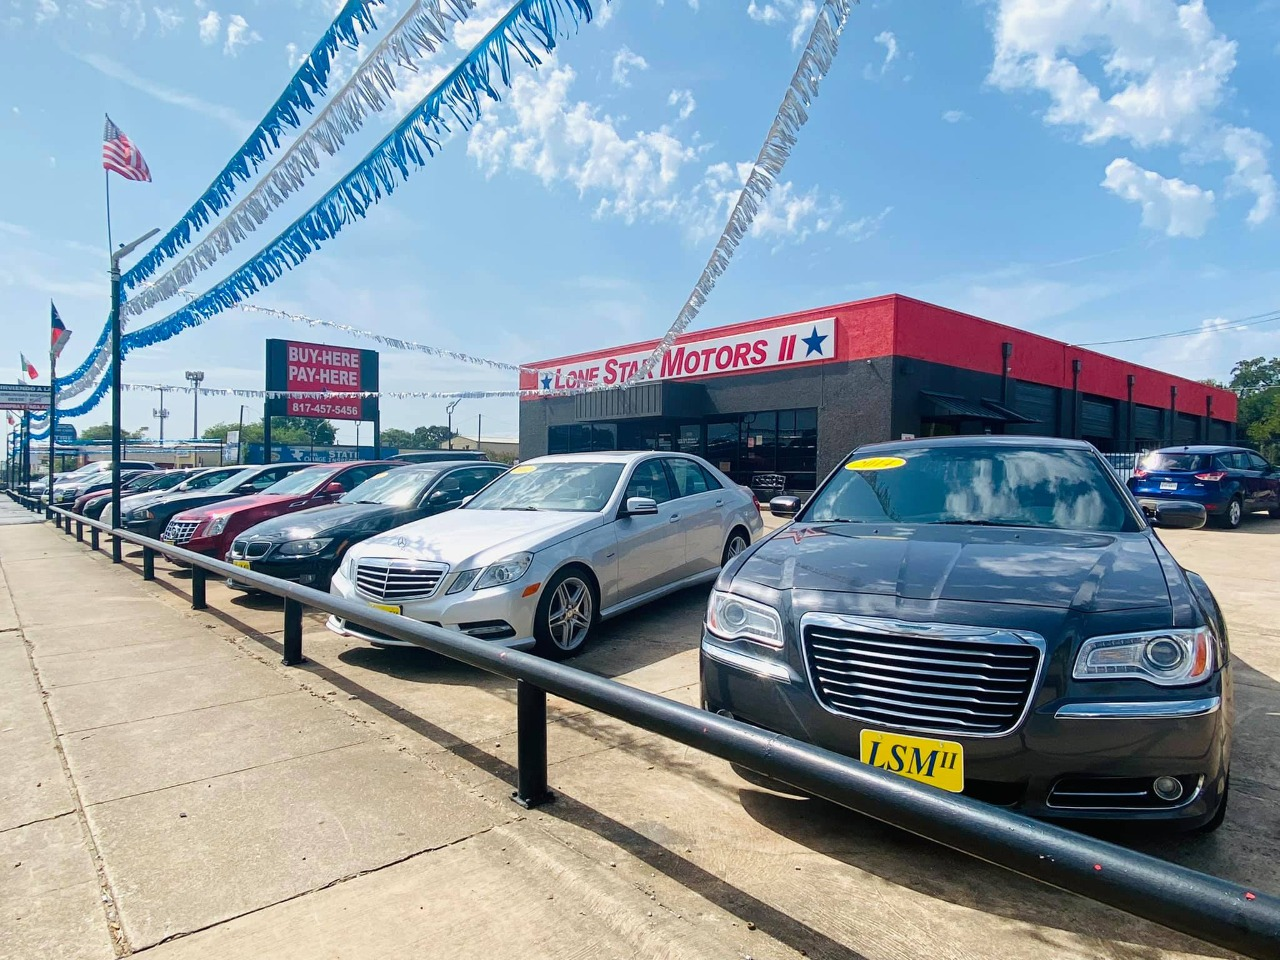 LONE STAR MOTORS II